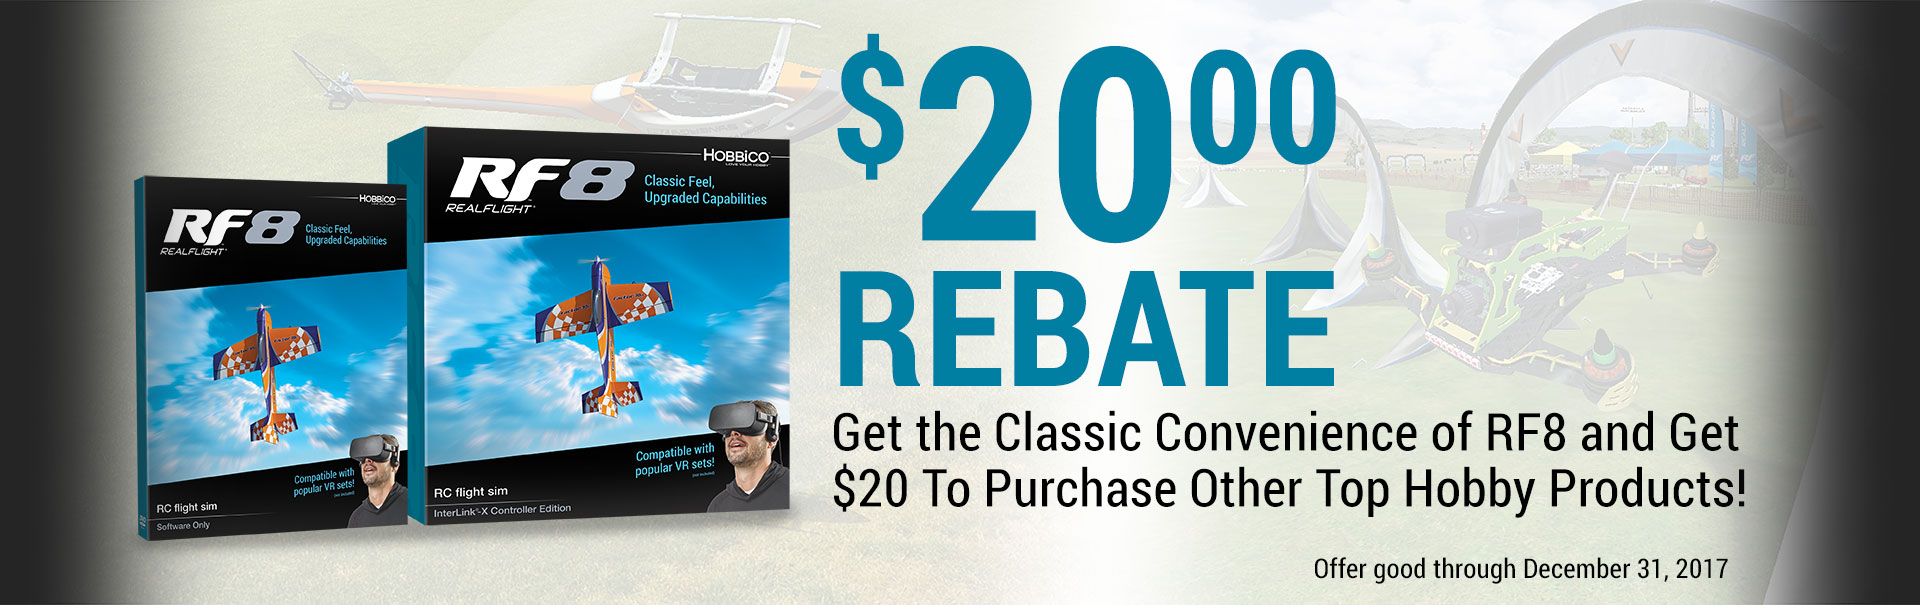 $20 Rebate.  Get the Classic Convenience of RF8 and